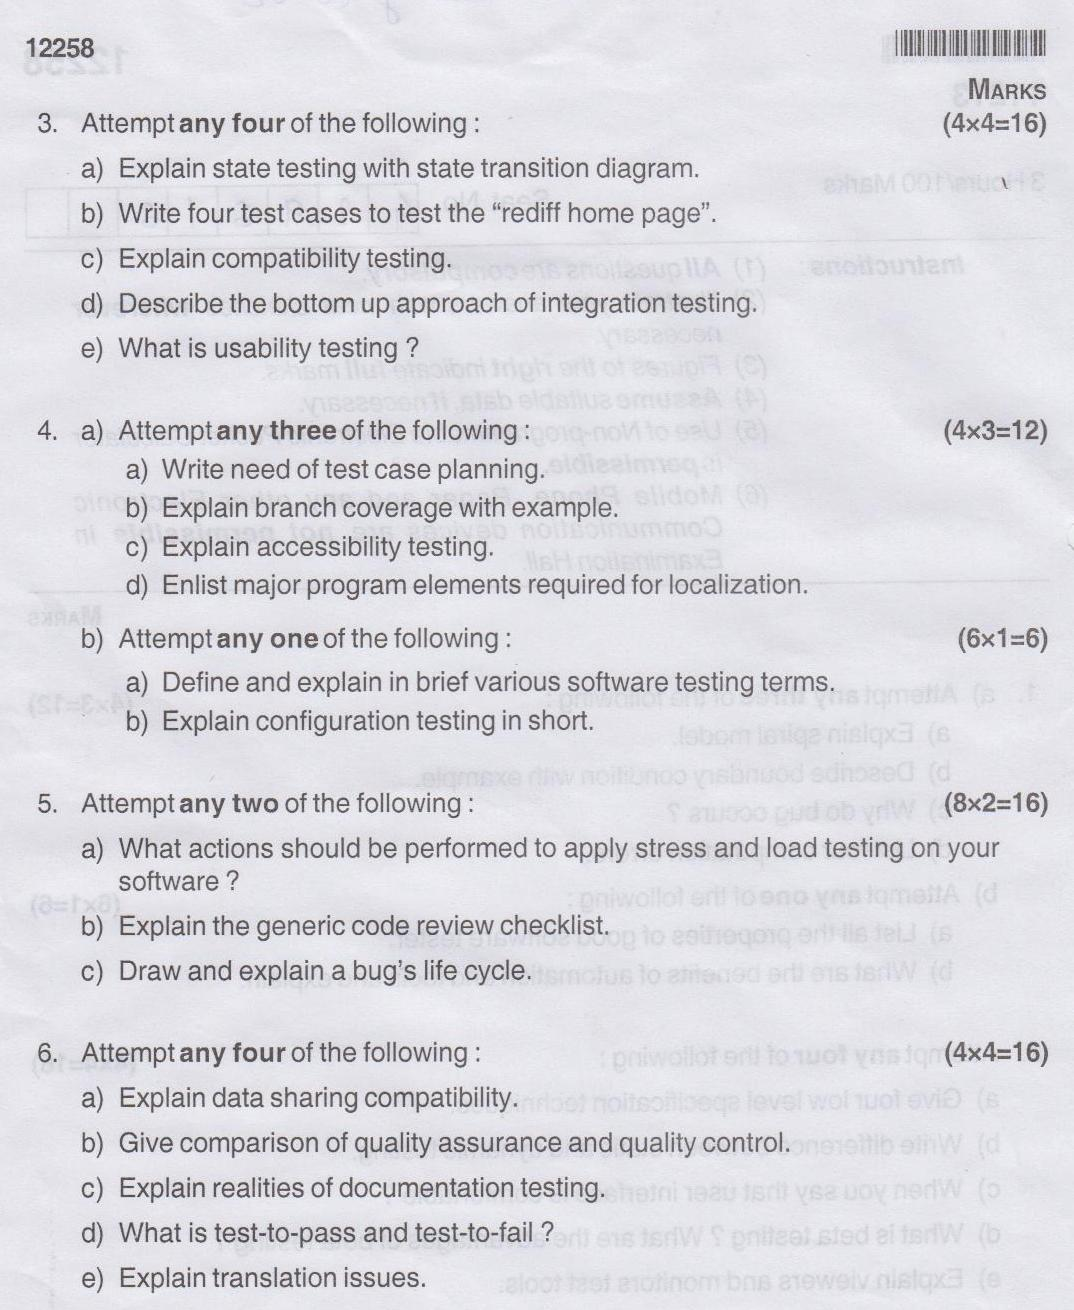 Maharashtra State Board Of Technical Education Msbte Question Paper For Diploma In Computer